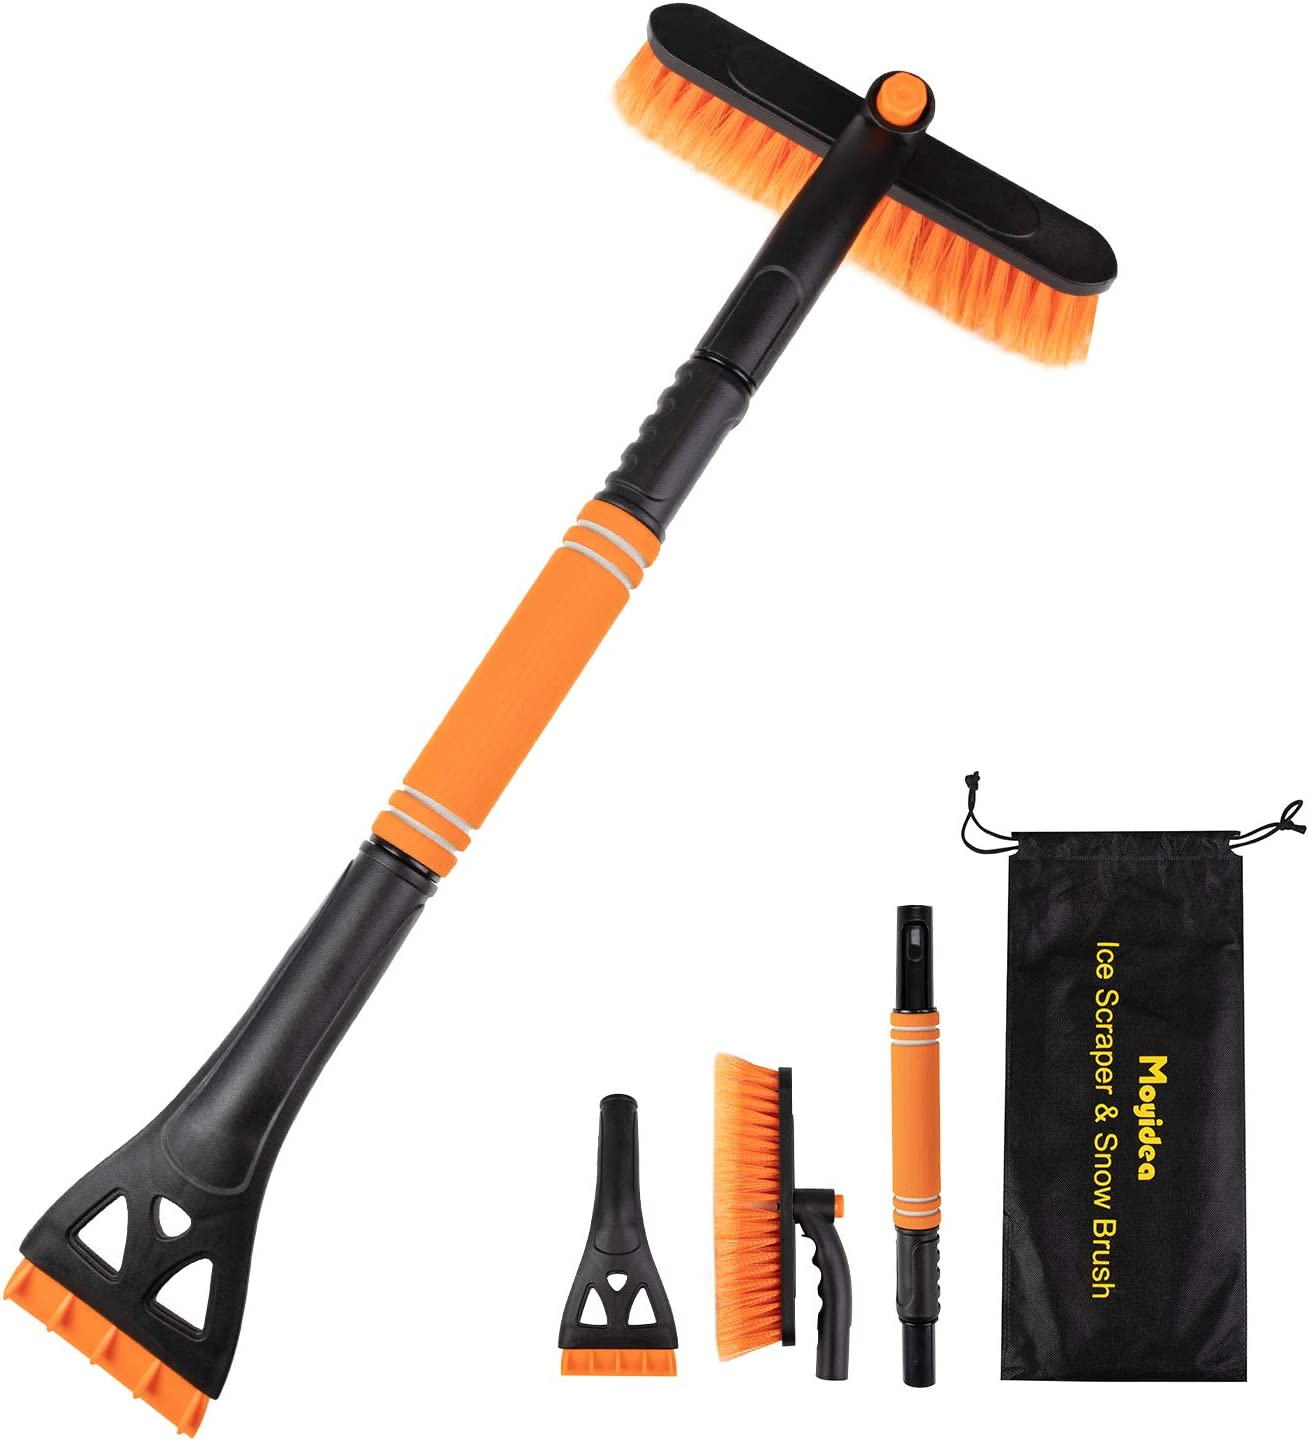 Moyidea 3 in 1 Extendable 25.2 to 31.5 Ice Scraper Snow Brush Detachable Snow Removal Tool with Ergonomic Foam Grip for Car SUV Truck